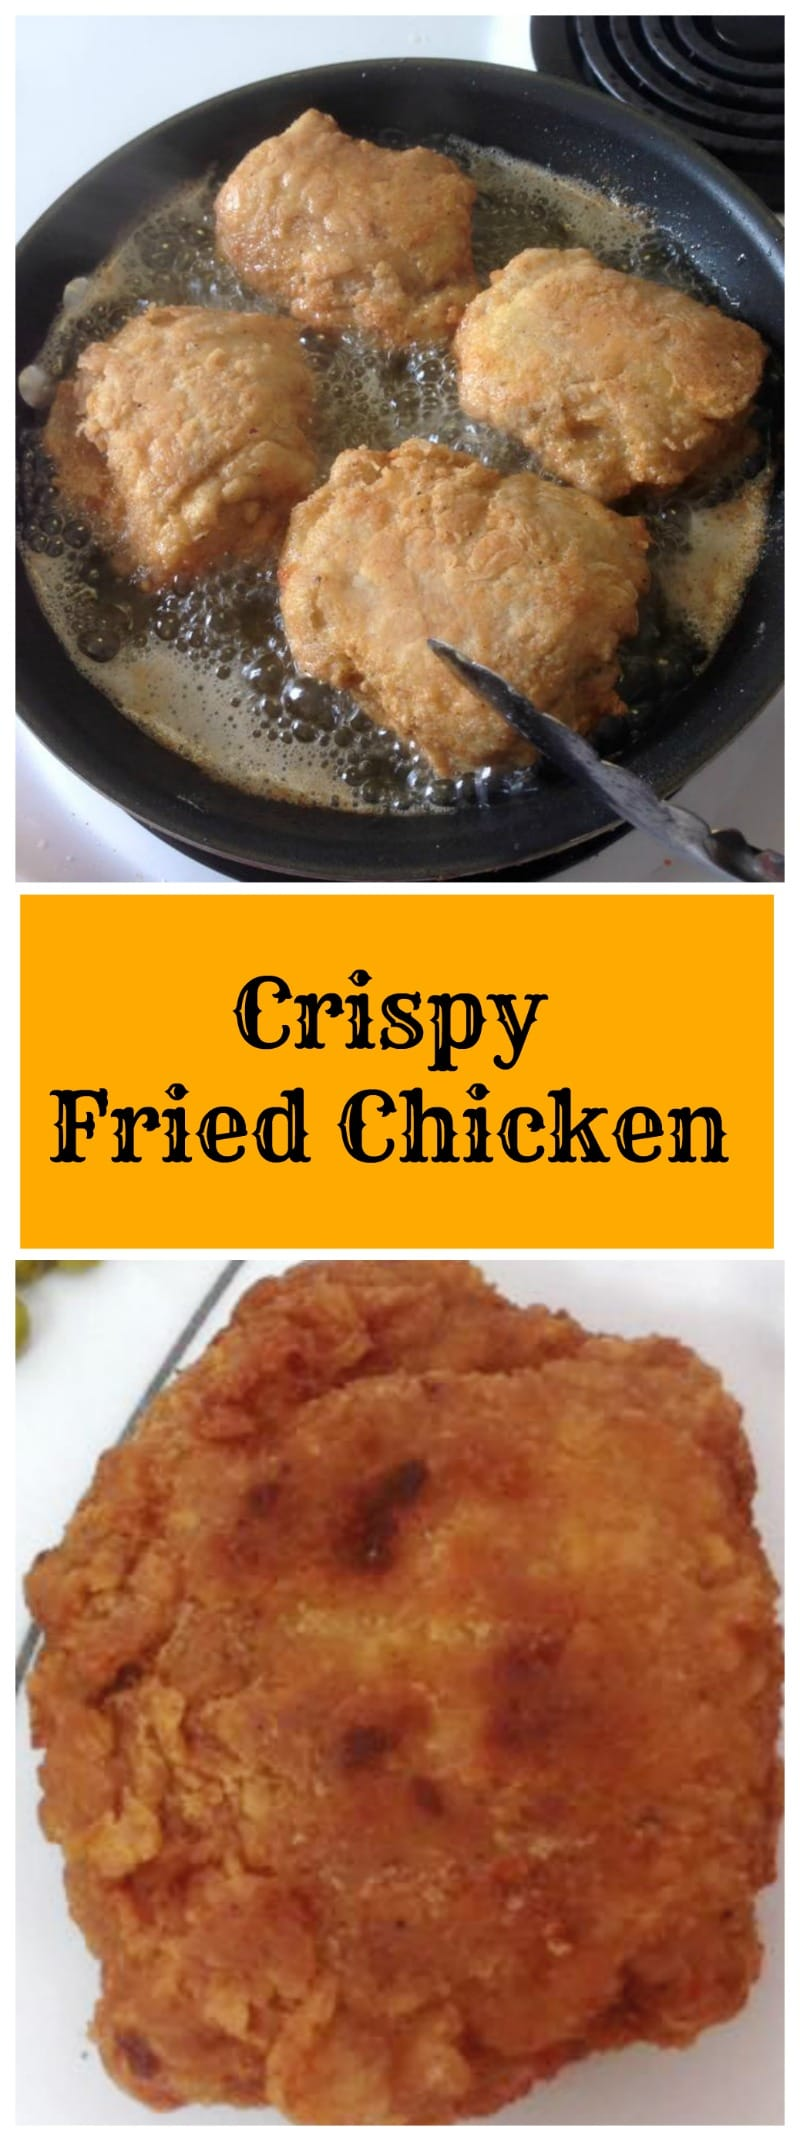 Crispy Fried Chicken, a delicious recipe with a lovely seasoning mix to give you THE BEST Fried Chicken in town!